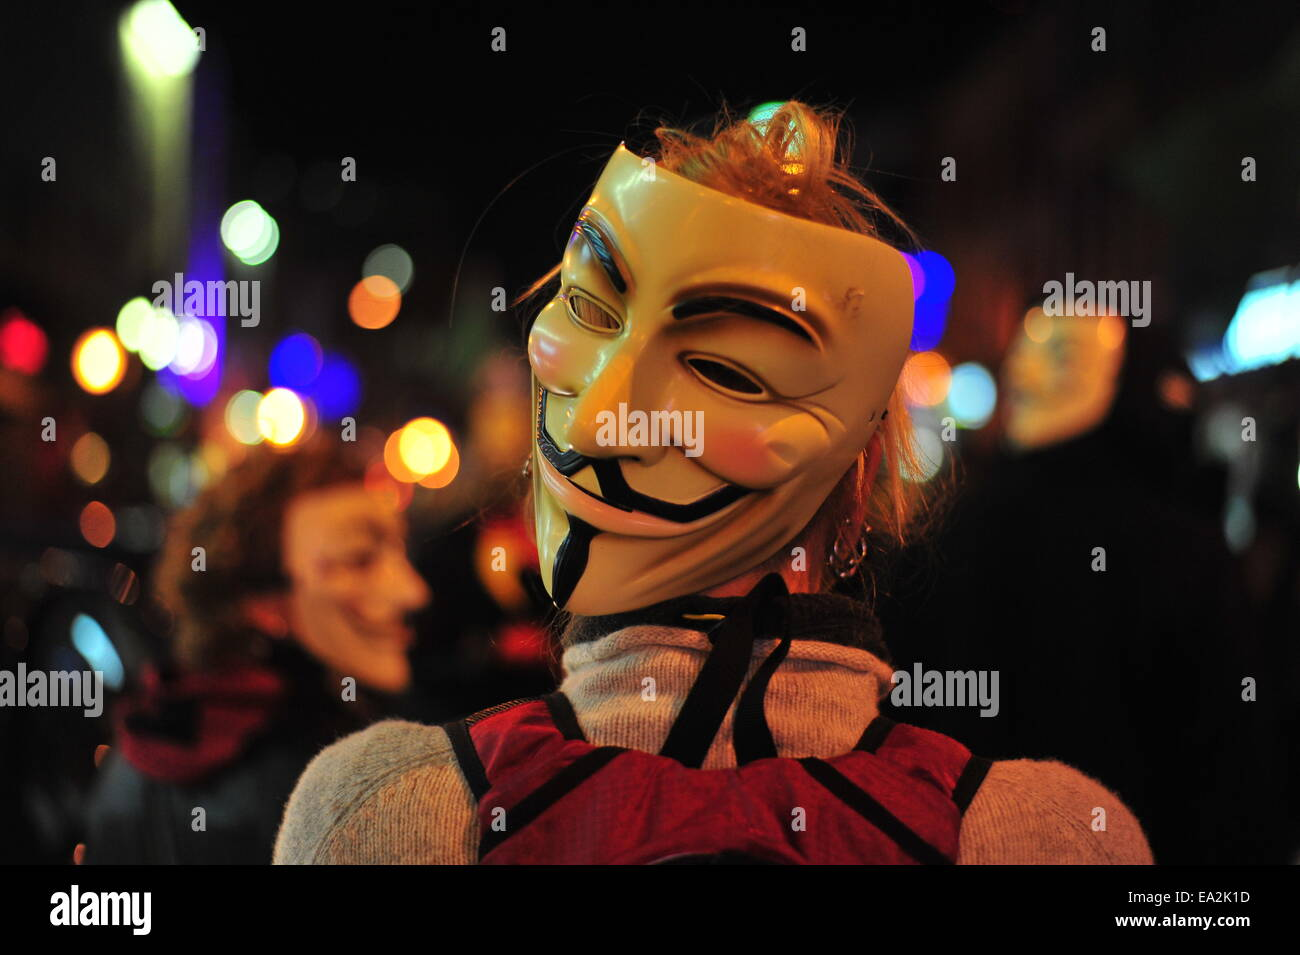 London, Ontario, Canada. 5th November, 2014.  Protesters aligned with the Anonymous movement march through London - Stock Image